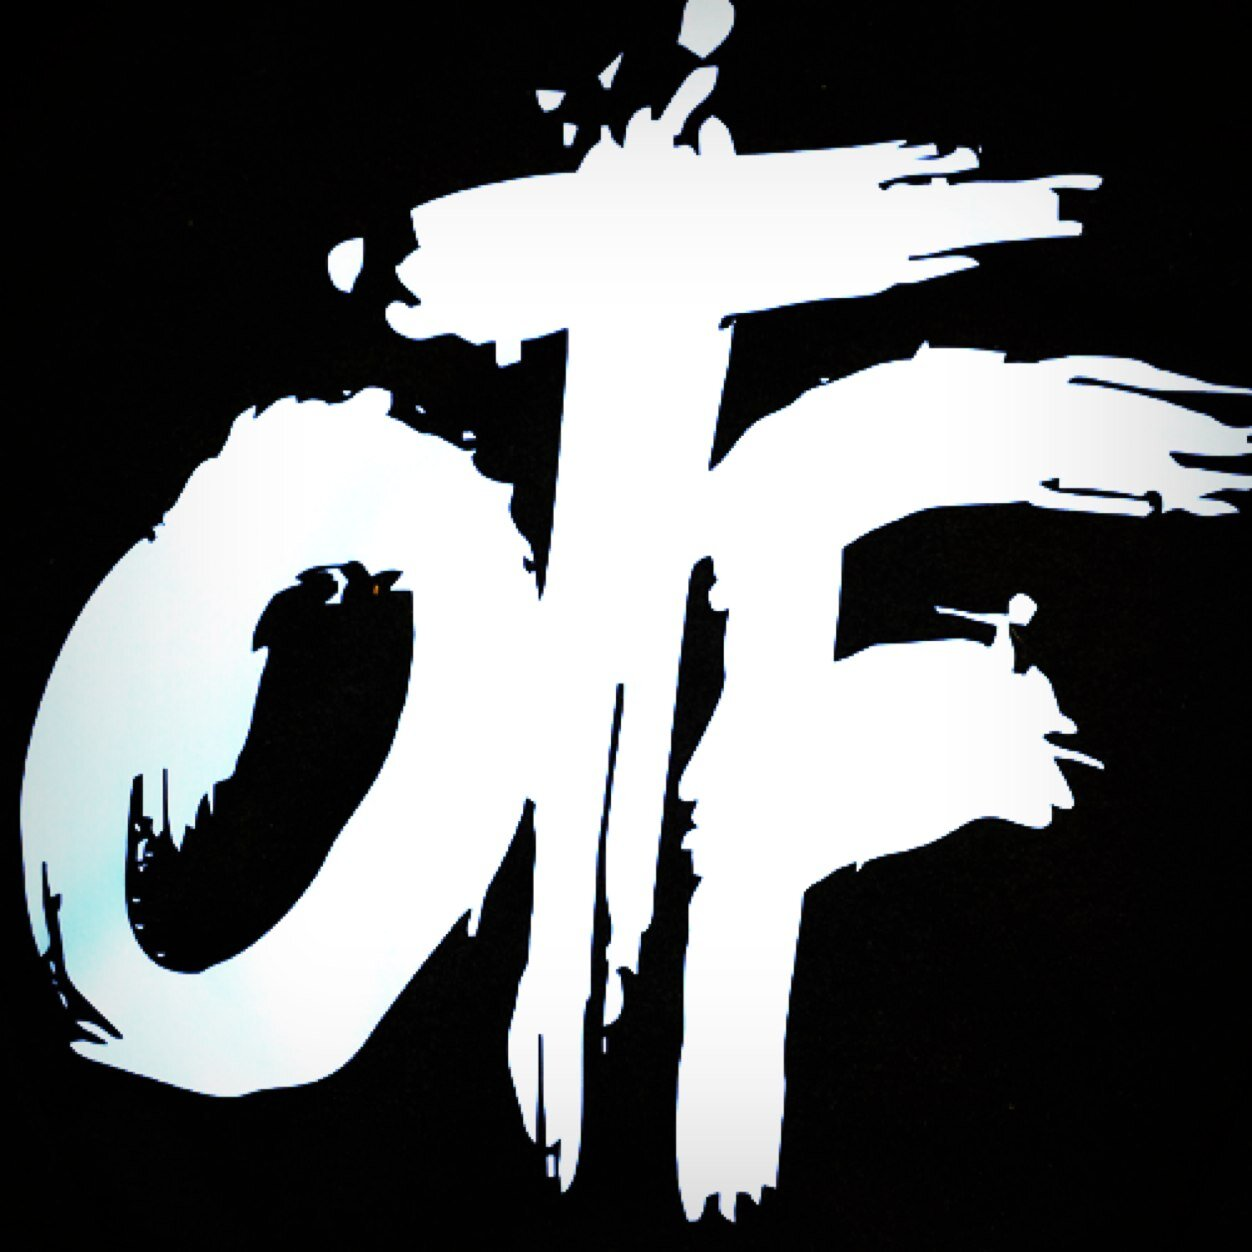 otf world otfworld twitter